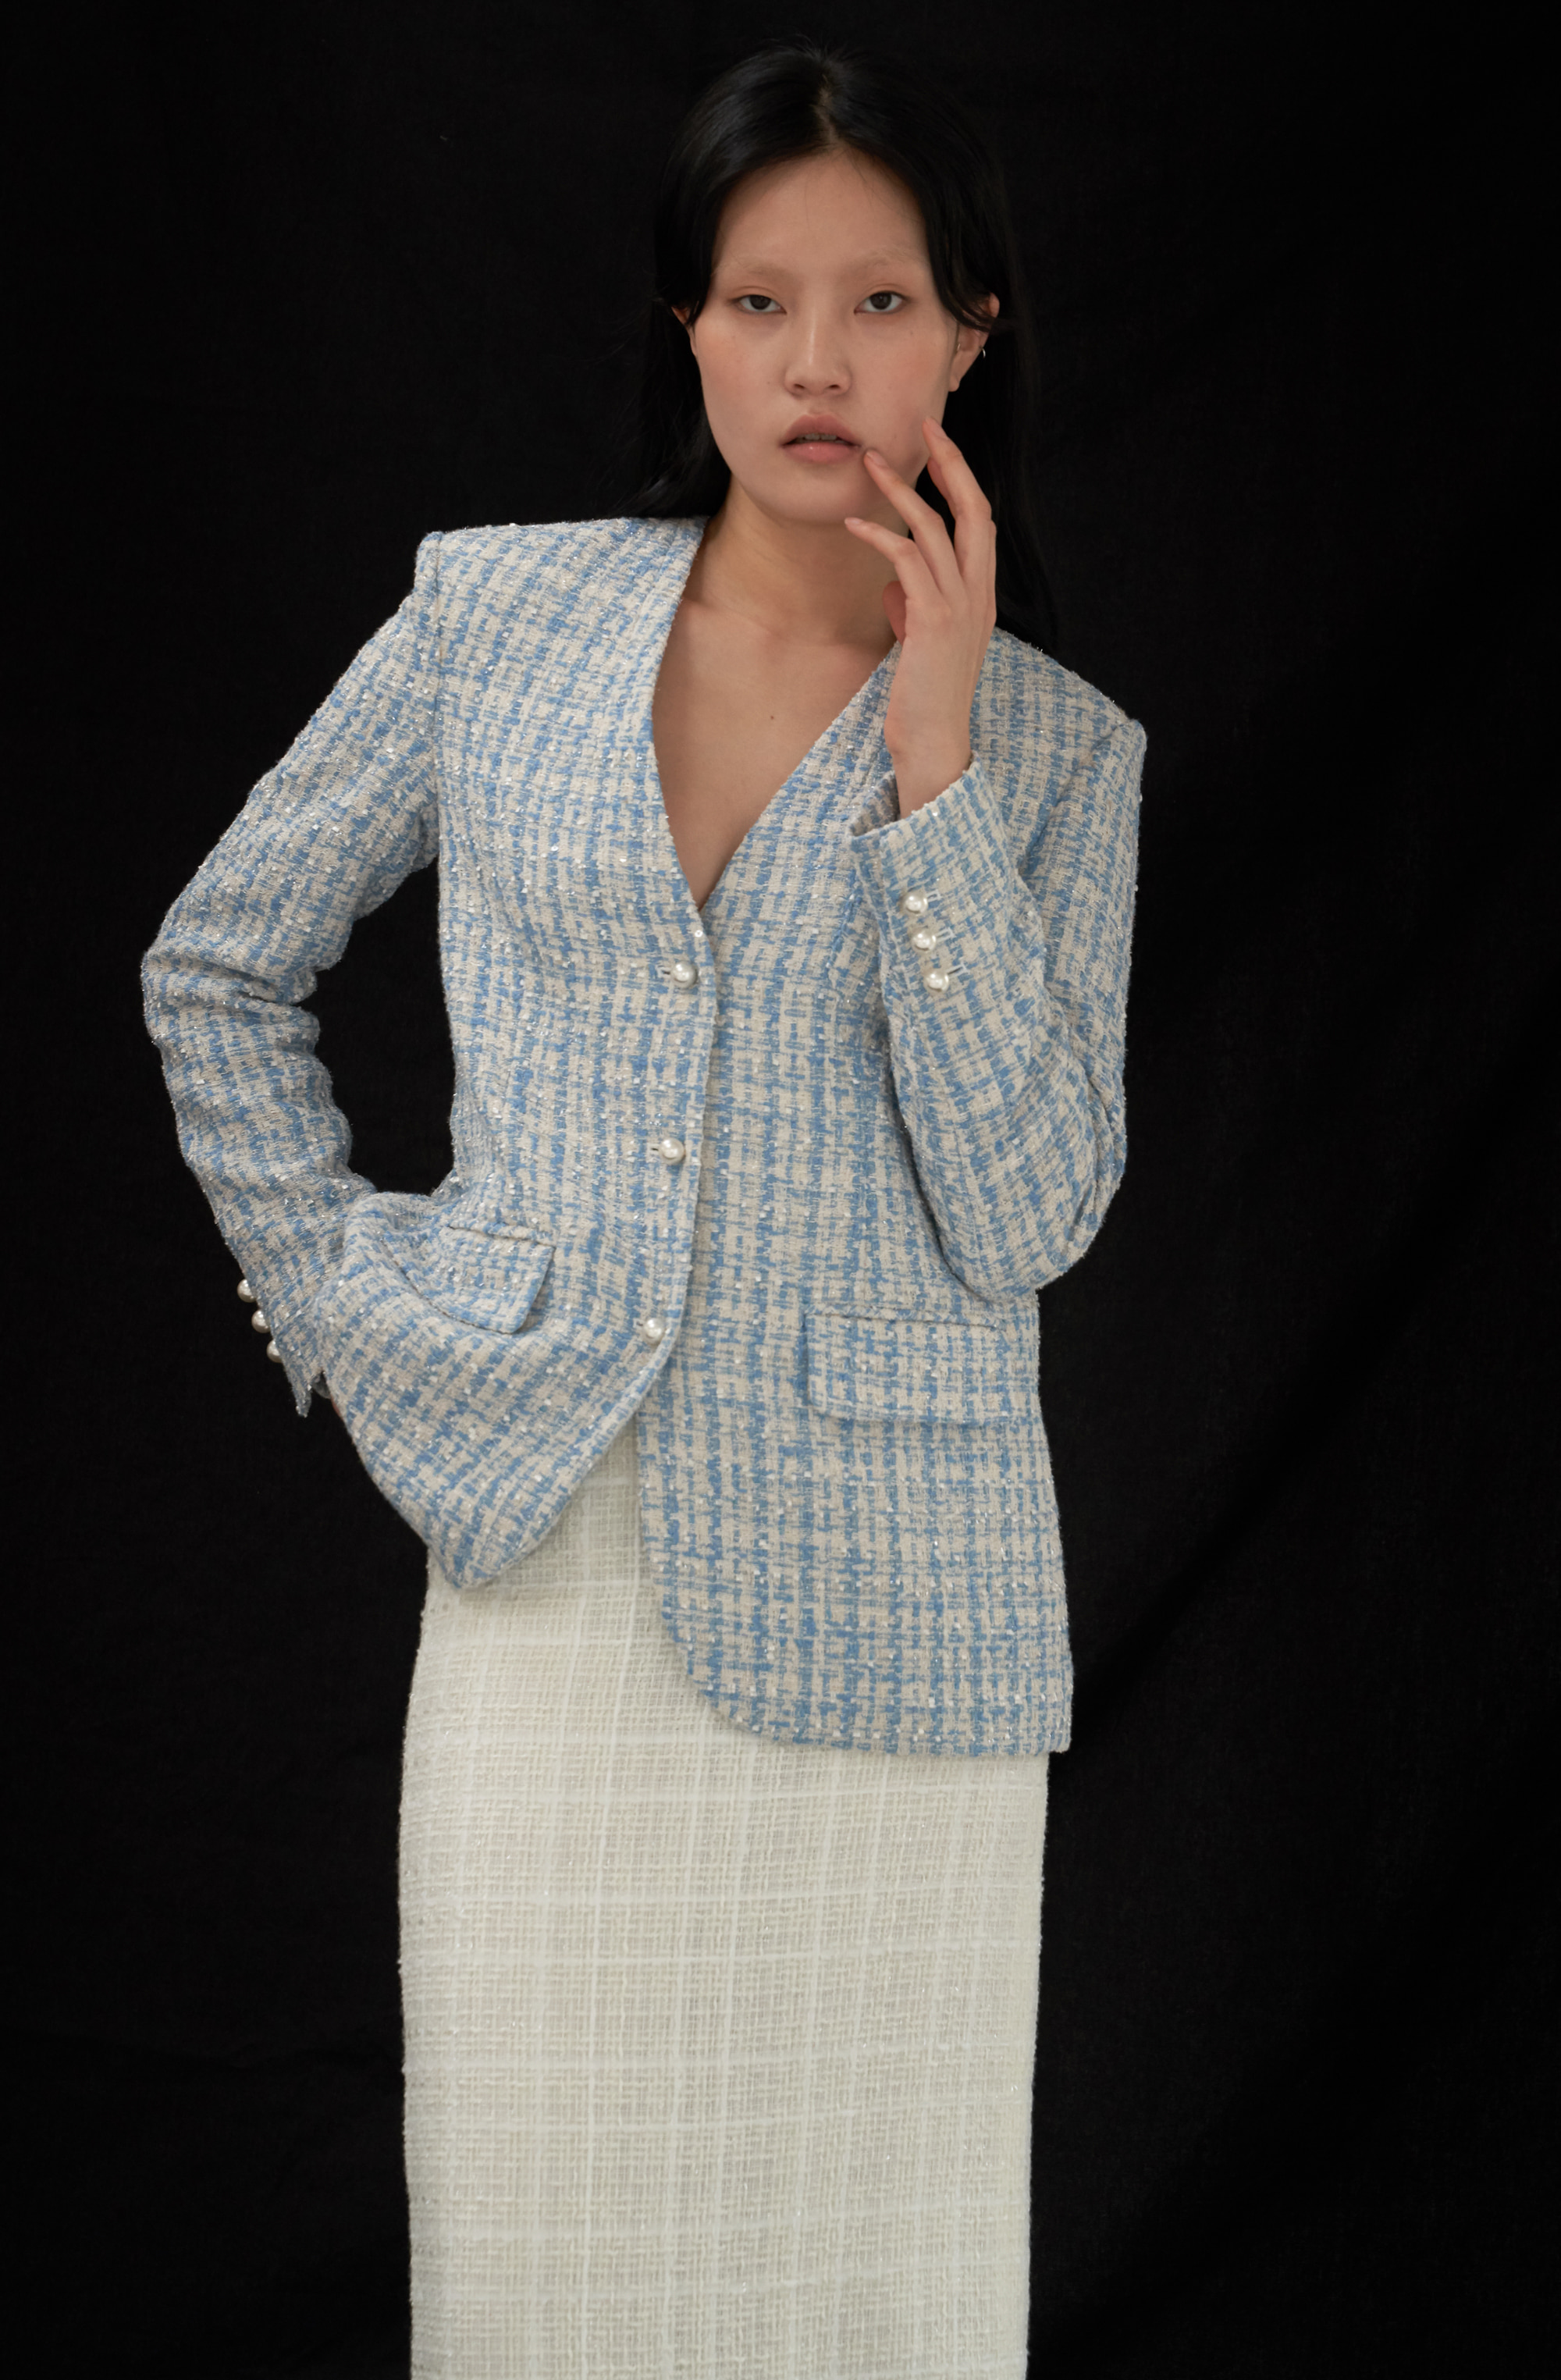 SIMPLY JACKET _ SKYBLUE TWEED